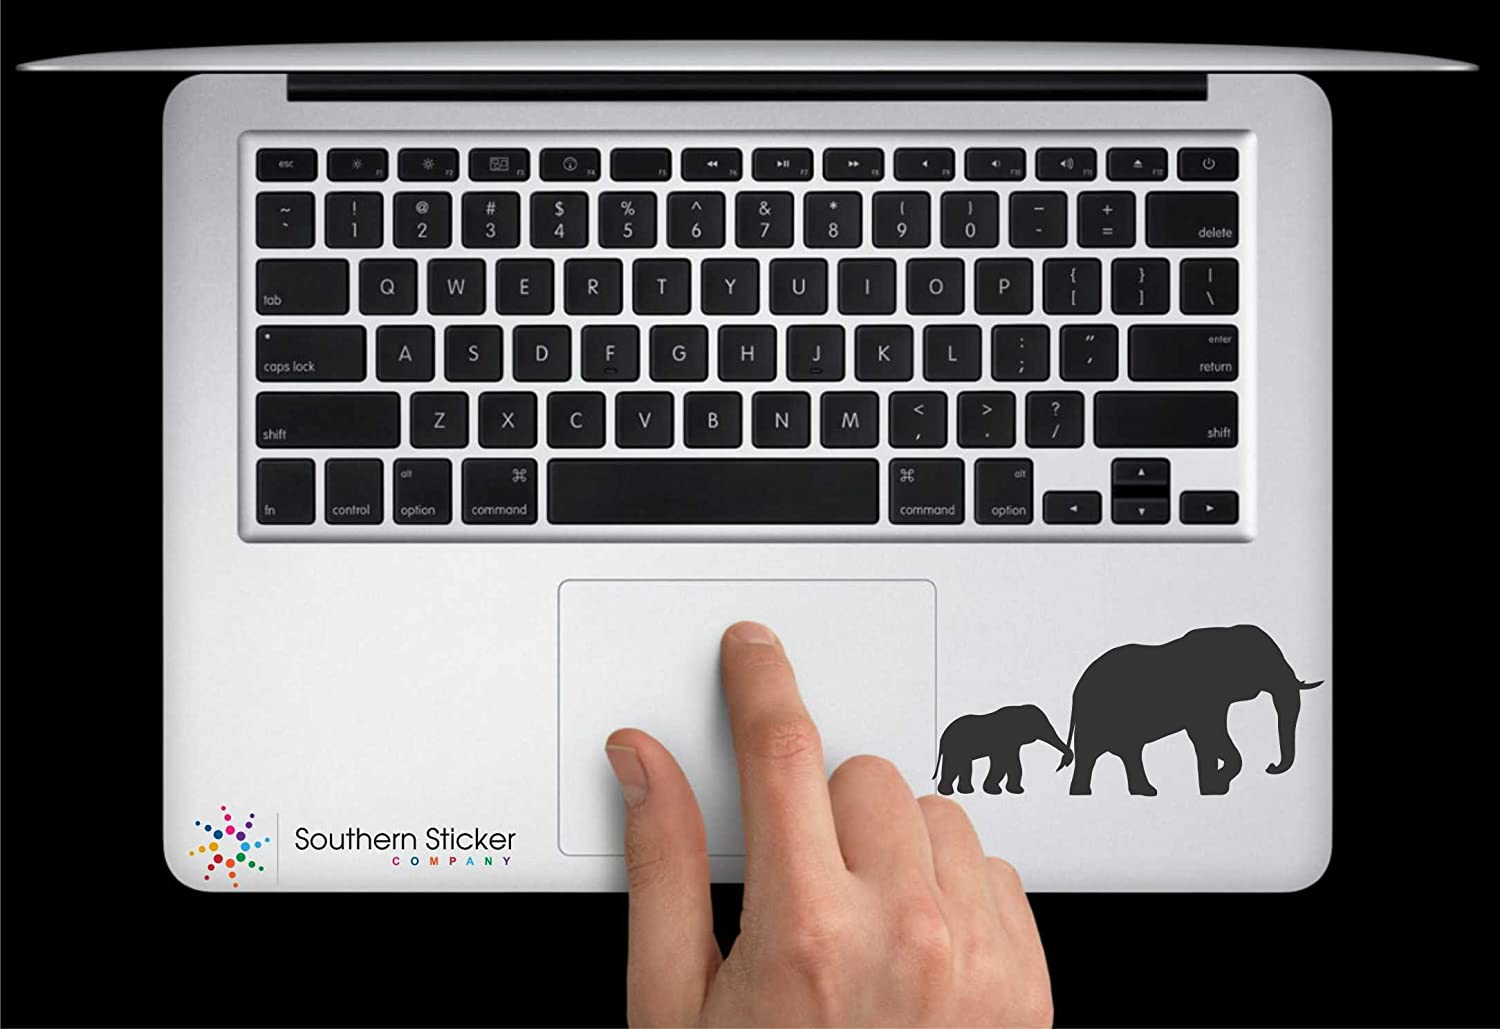 Elephant and Baby Walking Text Vinyl Car Sticker Symbol Silhouette Keypad Track Pad Decal Laptop Skin Ipad Macbook Window Truck Motorcycle